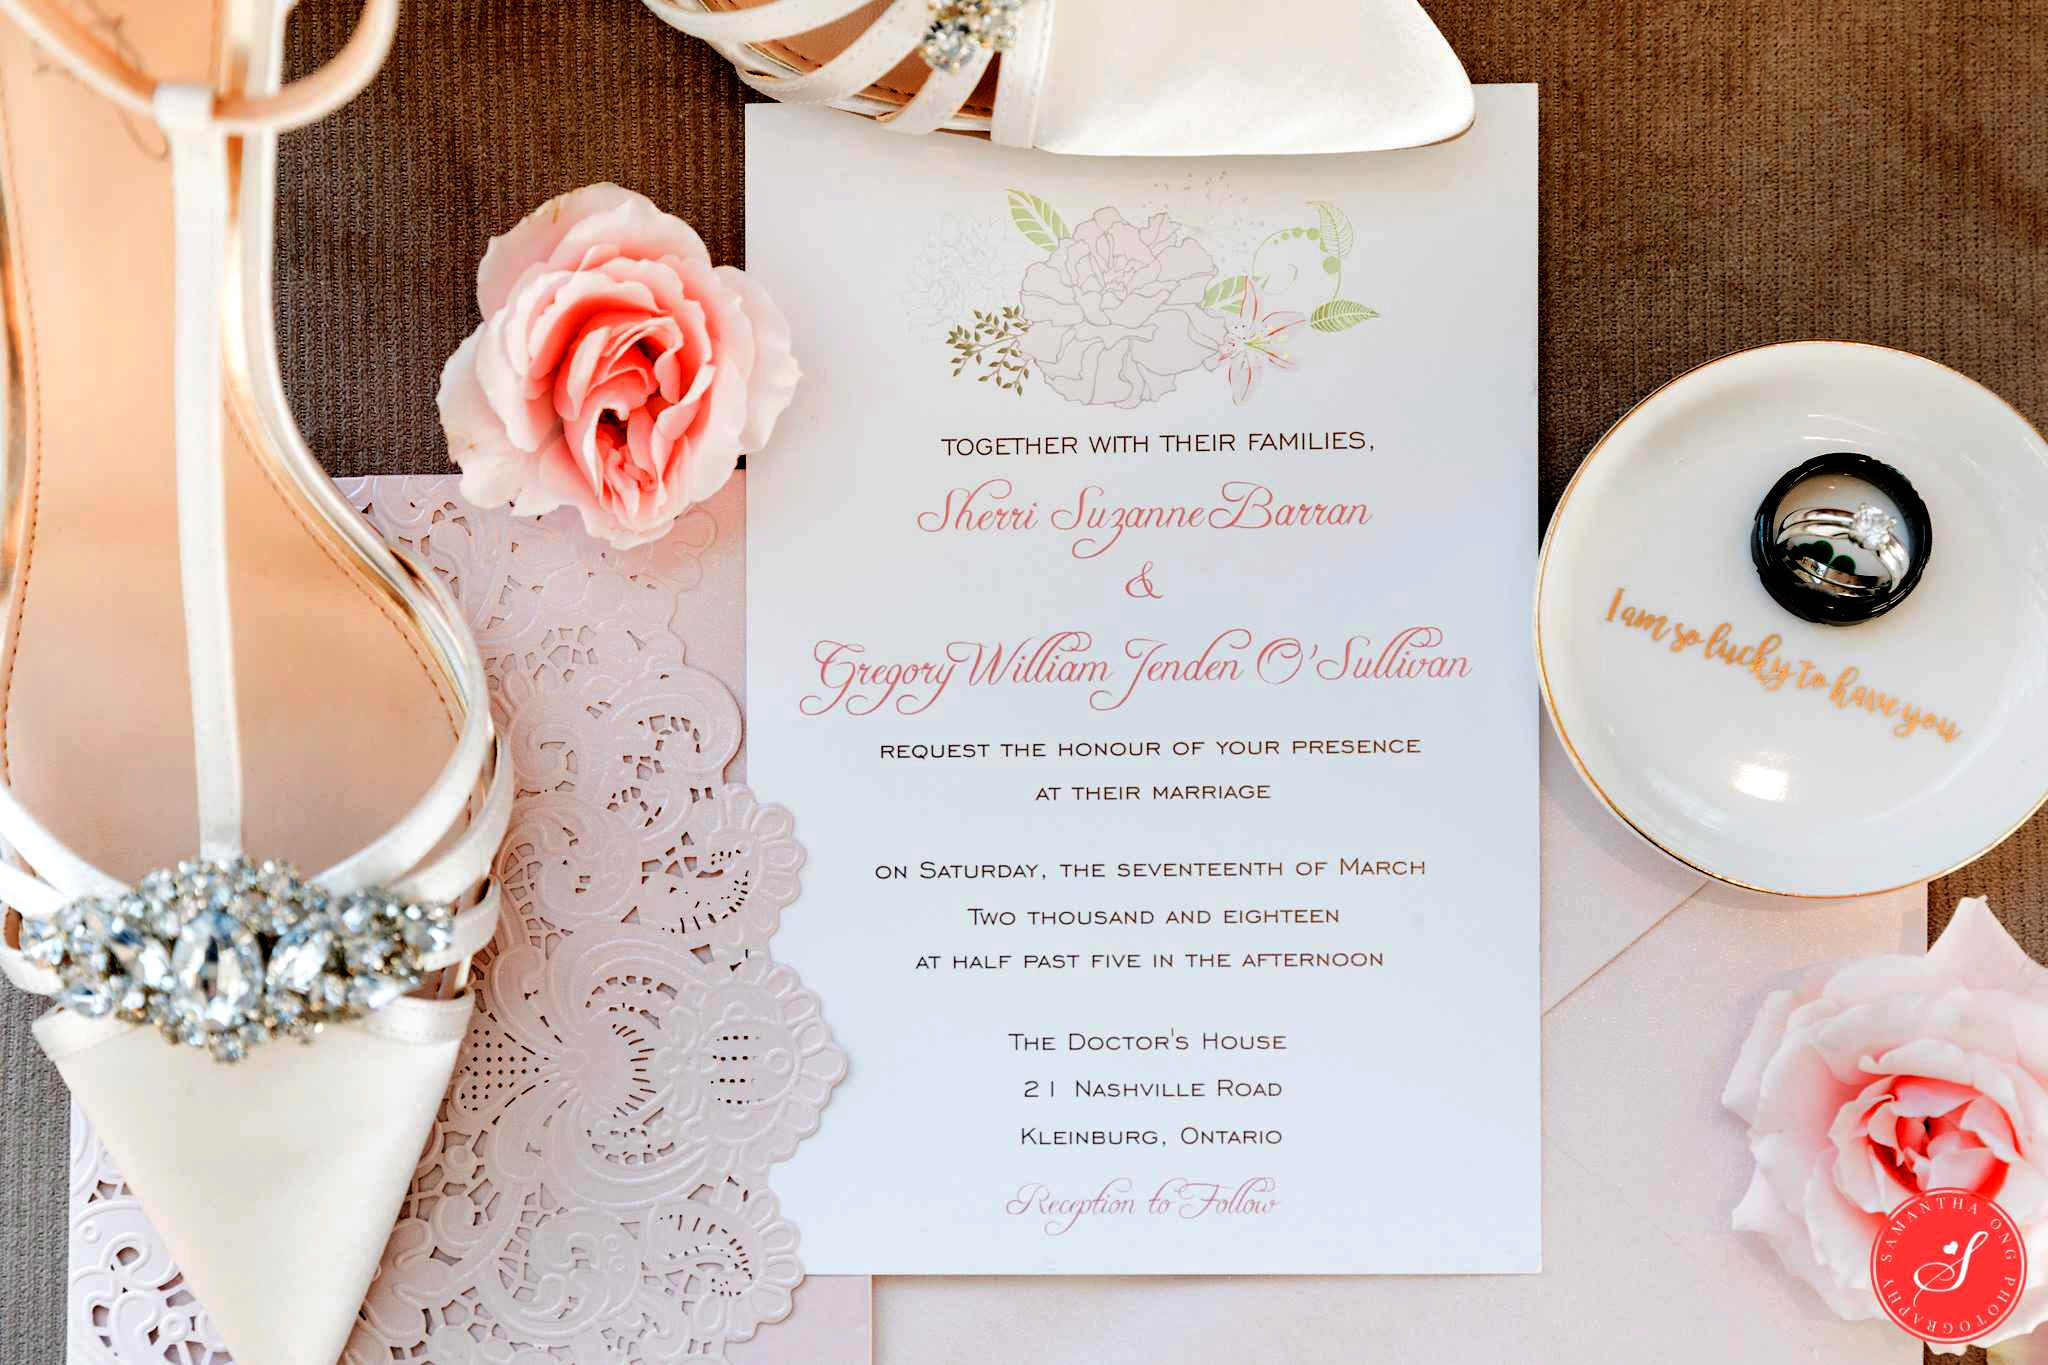 Affordable Wedding Invitations With Response Cards At Elegant